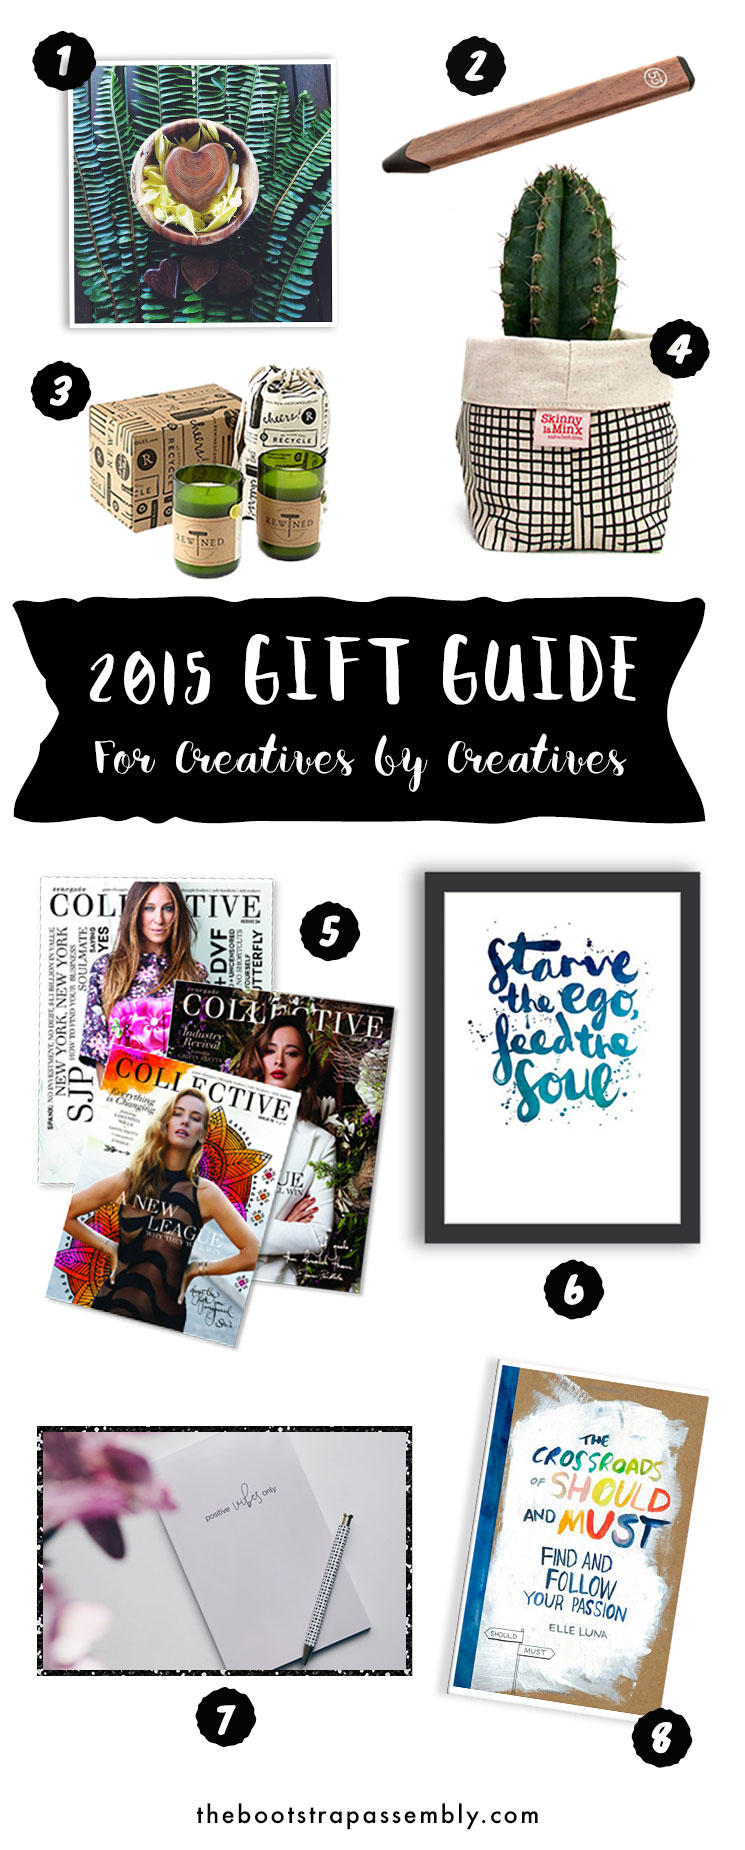 2015 Gift Guide For Creatives by Creatives